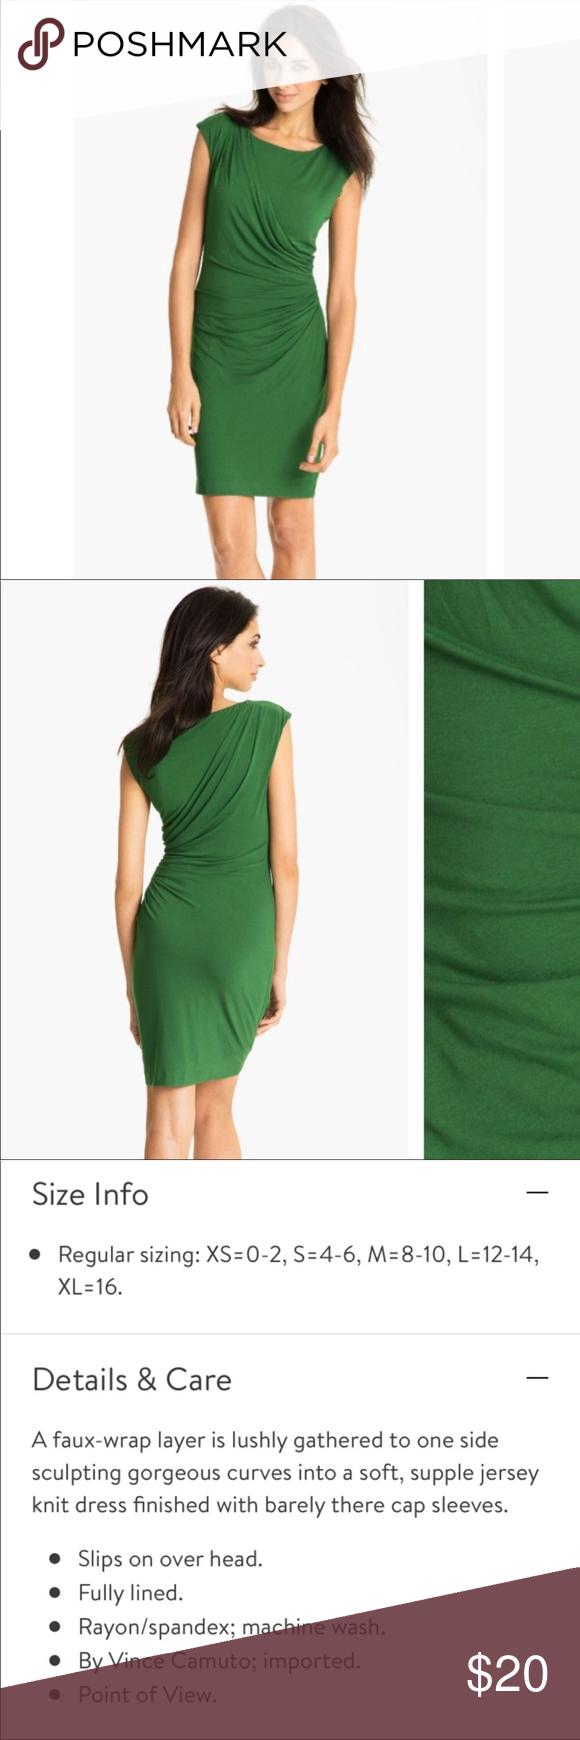 Vince Camuto Emerald Green Ruched Sheath Dress L Sheath Dress Dresses Large Size Dresses [ 1740 x 580 Pixel ]